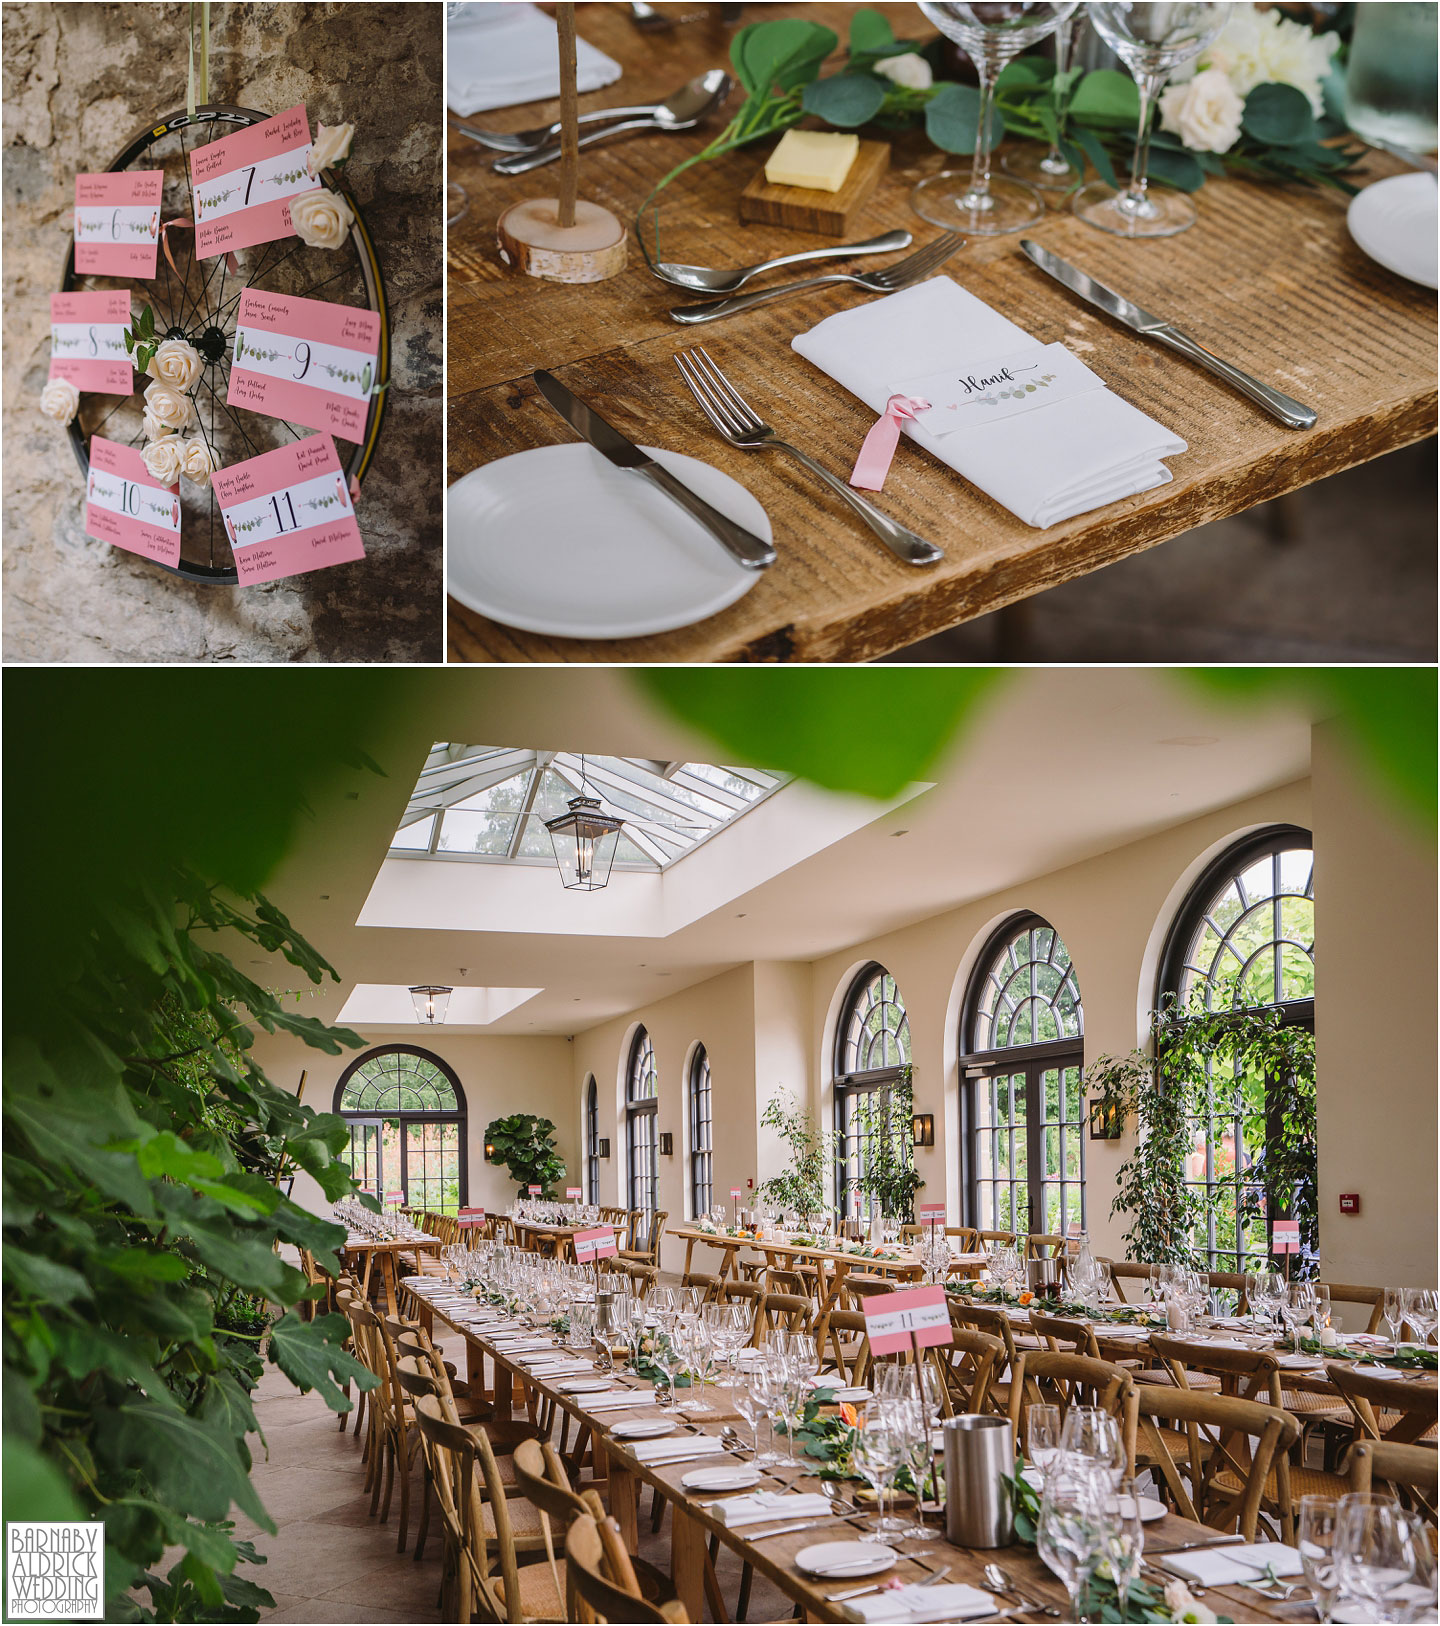 Wedding breakfast at the Fig House Walled Garden at Middleton Lodge, Fig House Walled Garden Middleton Lodge Wedding Photos, Fig House Middleton Lodge Richmond, Middleton Lodge wedding photographer, Middleton Lodge Wedding Photography, Yorkshire Wedding Photographer Barnaby Aldrick